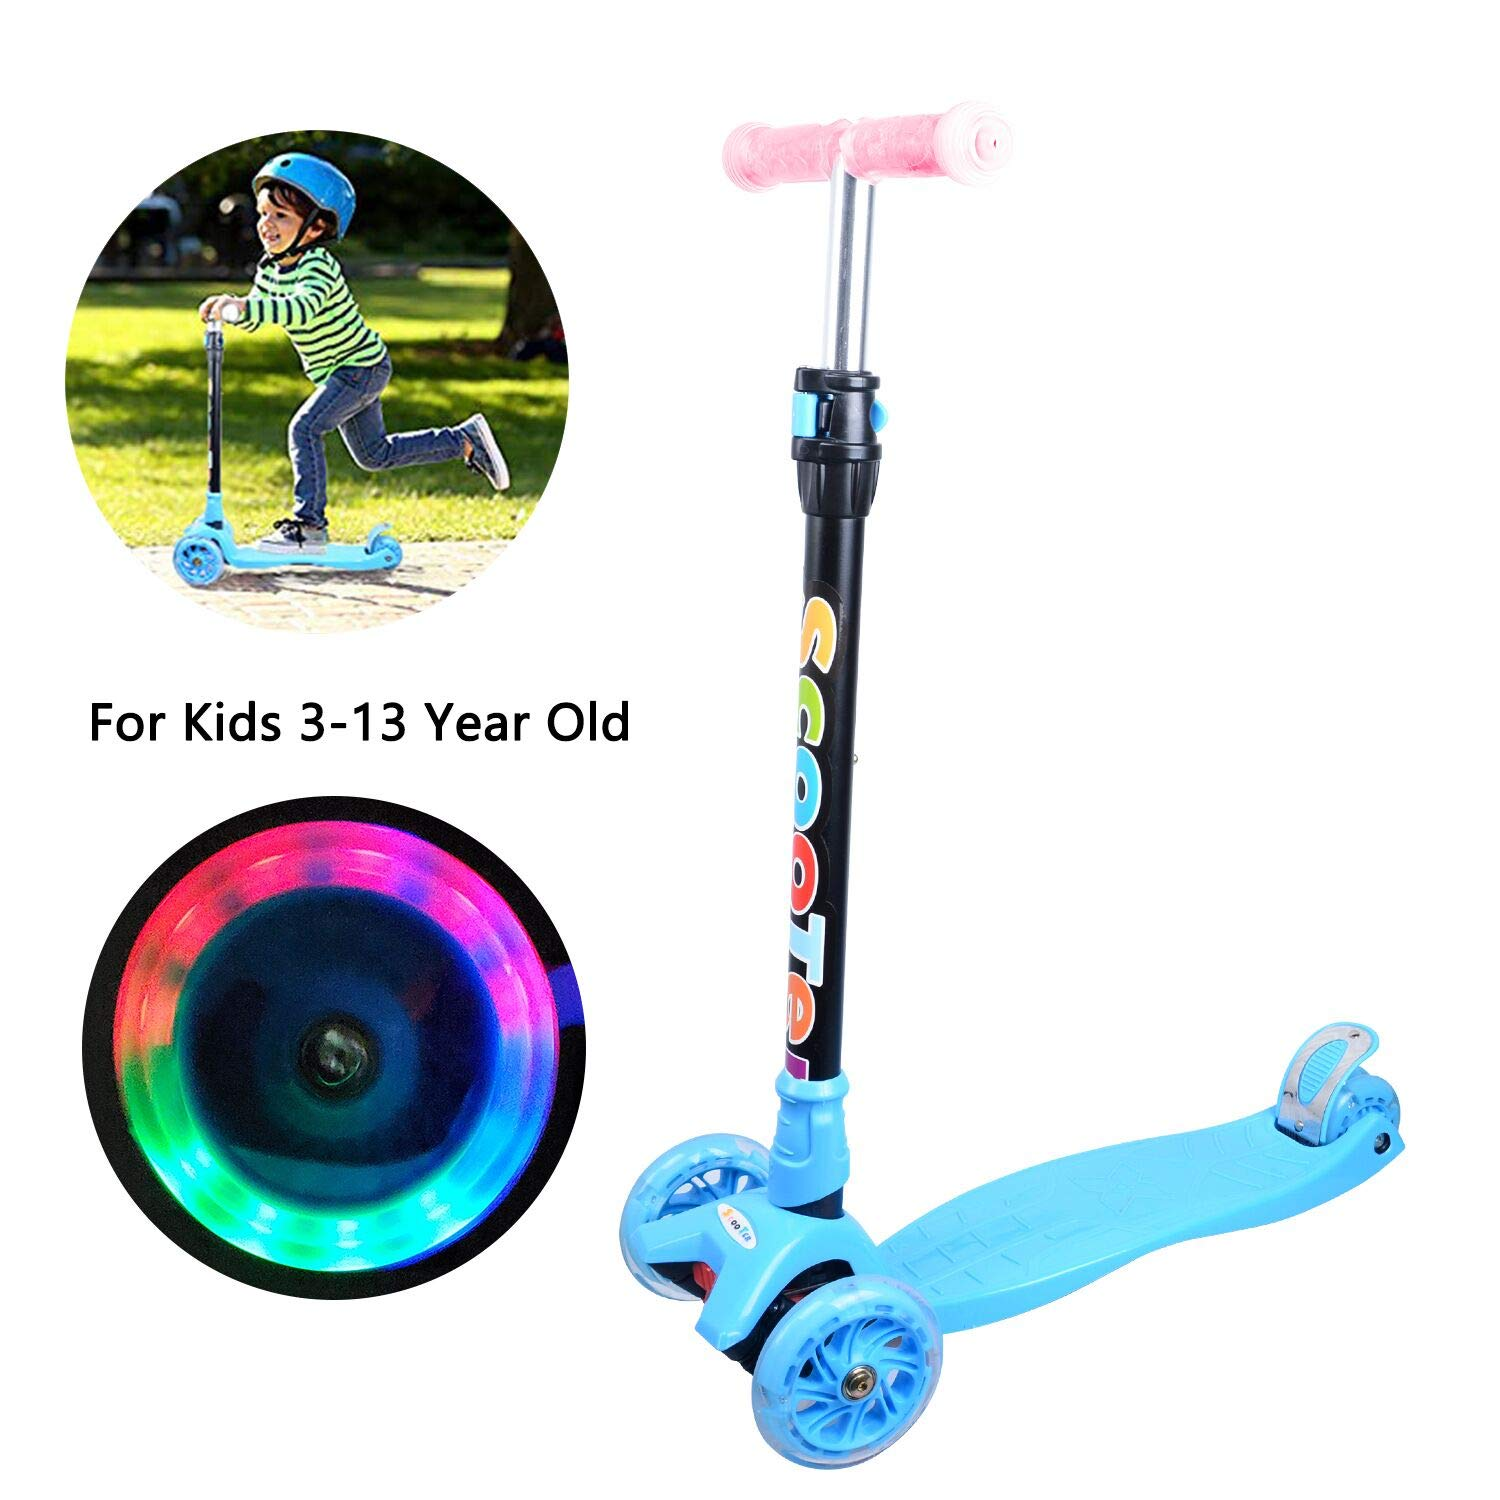 Kick Scooter for Kids Toddlers Scooter Girls or Boys 3 Wheel 4 Adjustable Height Children Scooter, Lean to Steer with PU LED Light Up Flashing Wheels Children Age 3-12 Years Old by ANSTEN